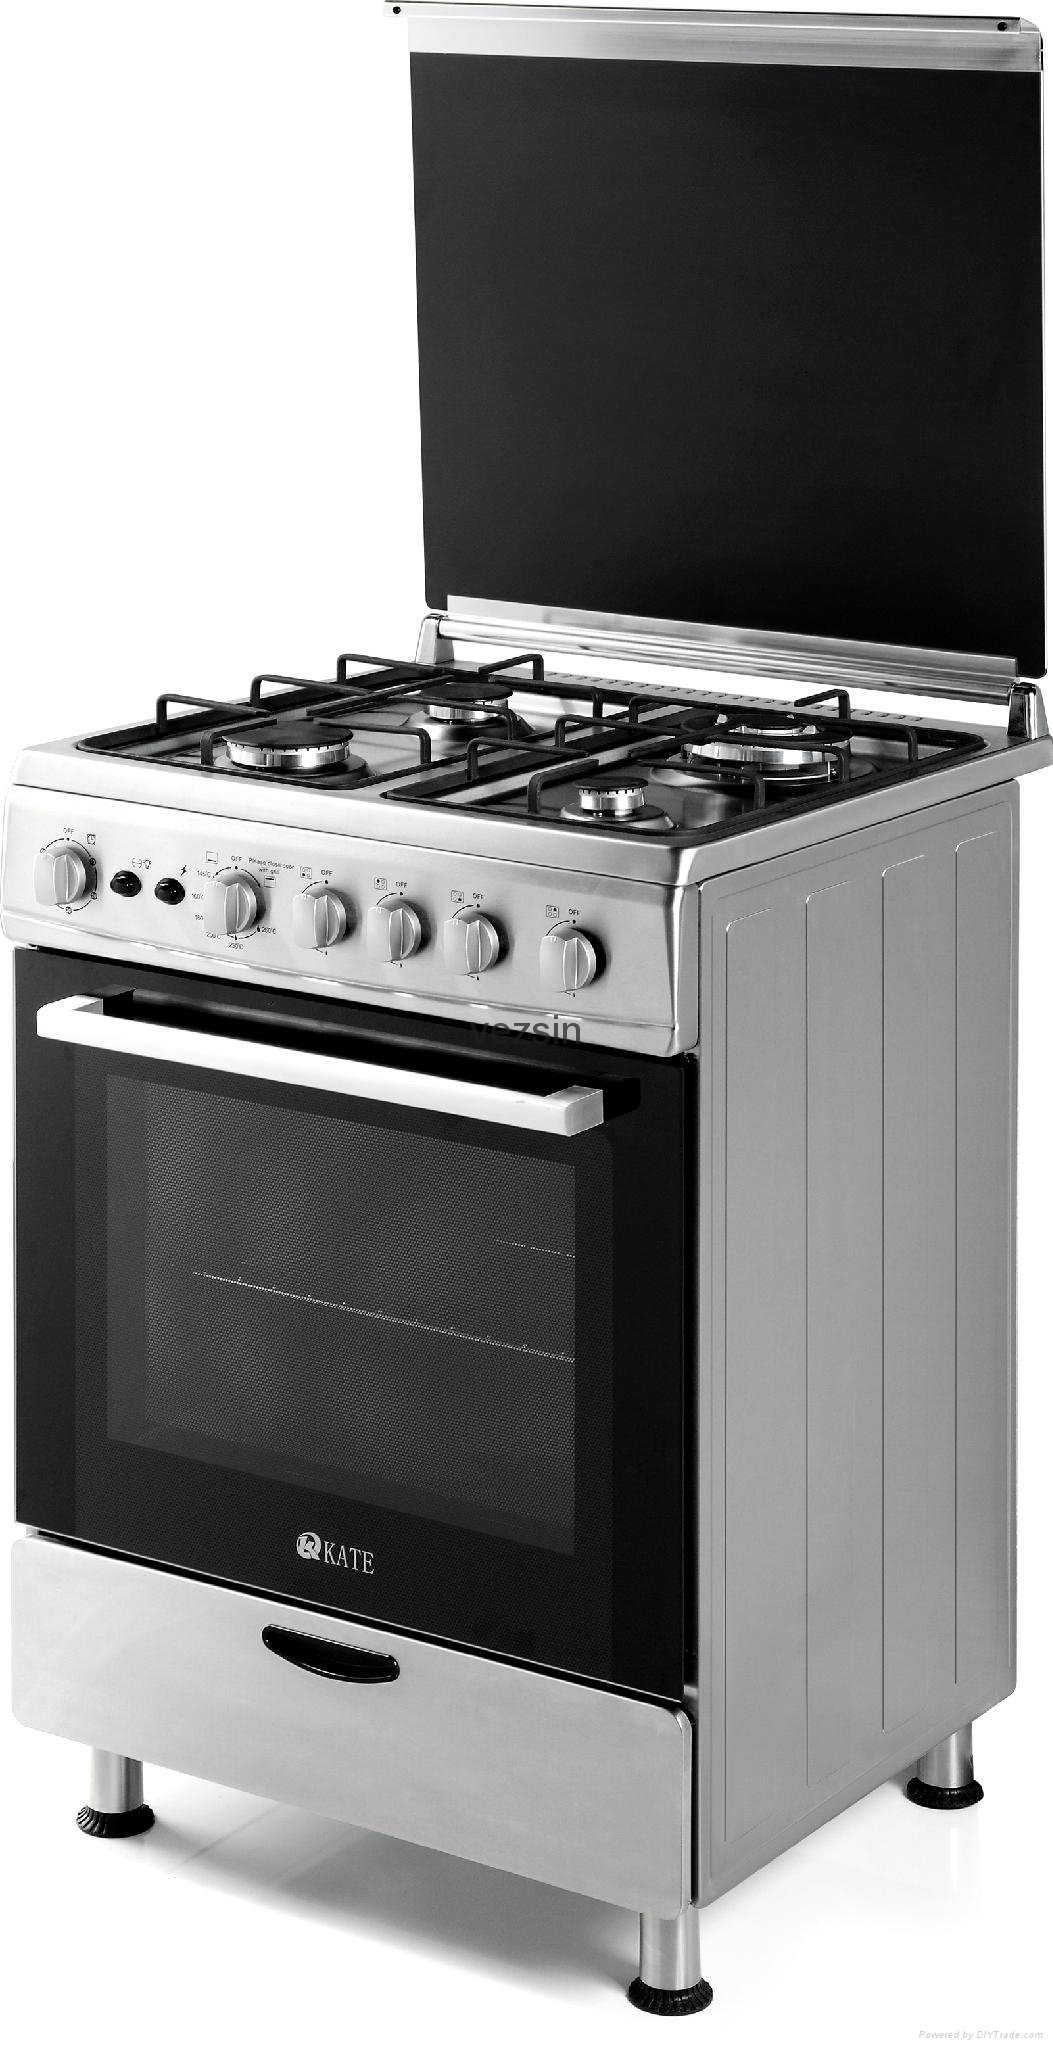 Kate 24 Inch Stainless Steel Free Standing Gas Cooker with Oven (G24B01) 1